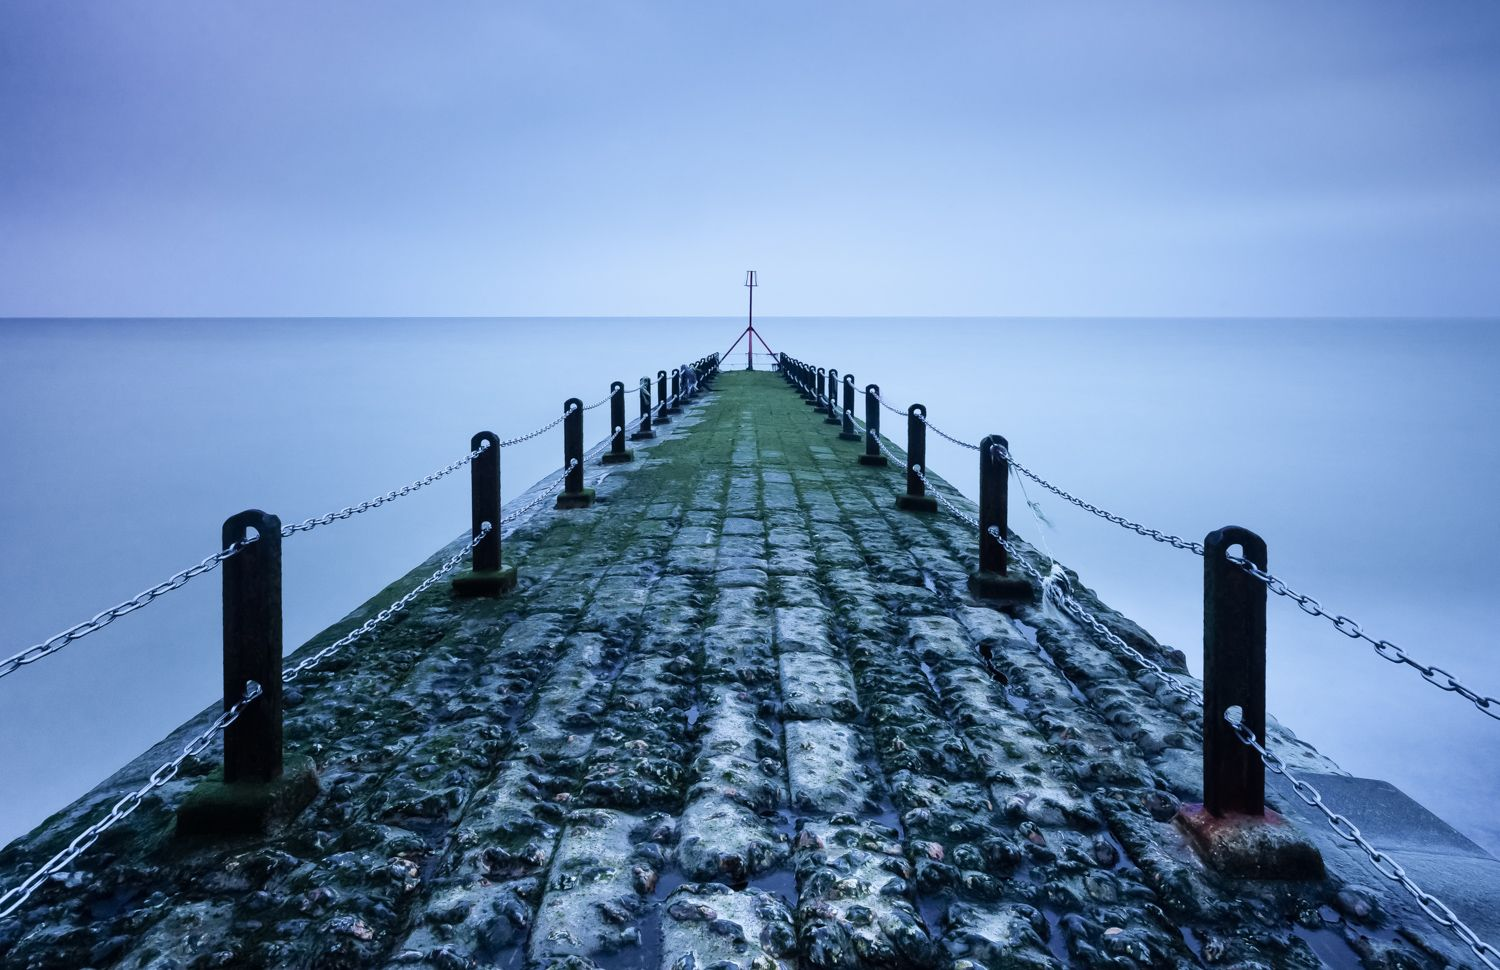 rainy jetty in brighton